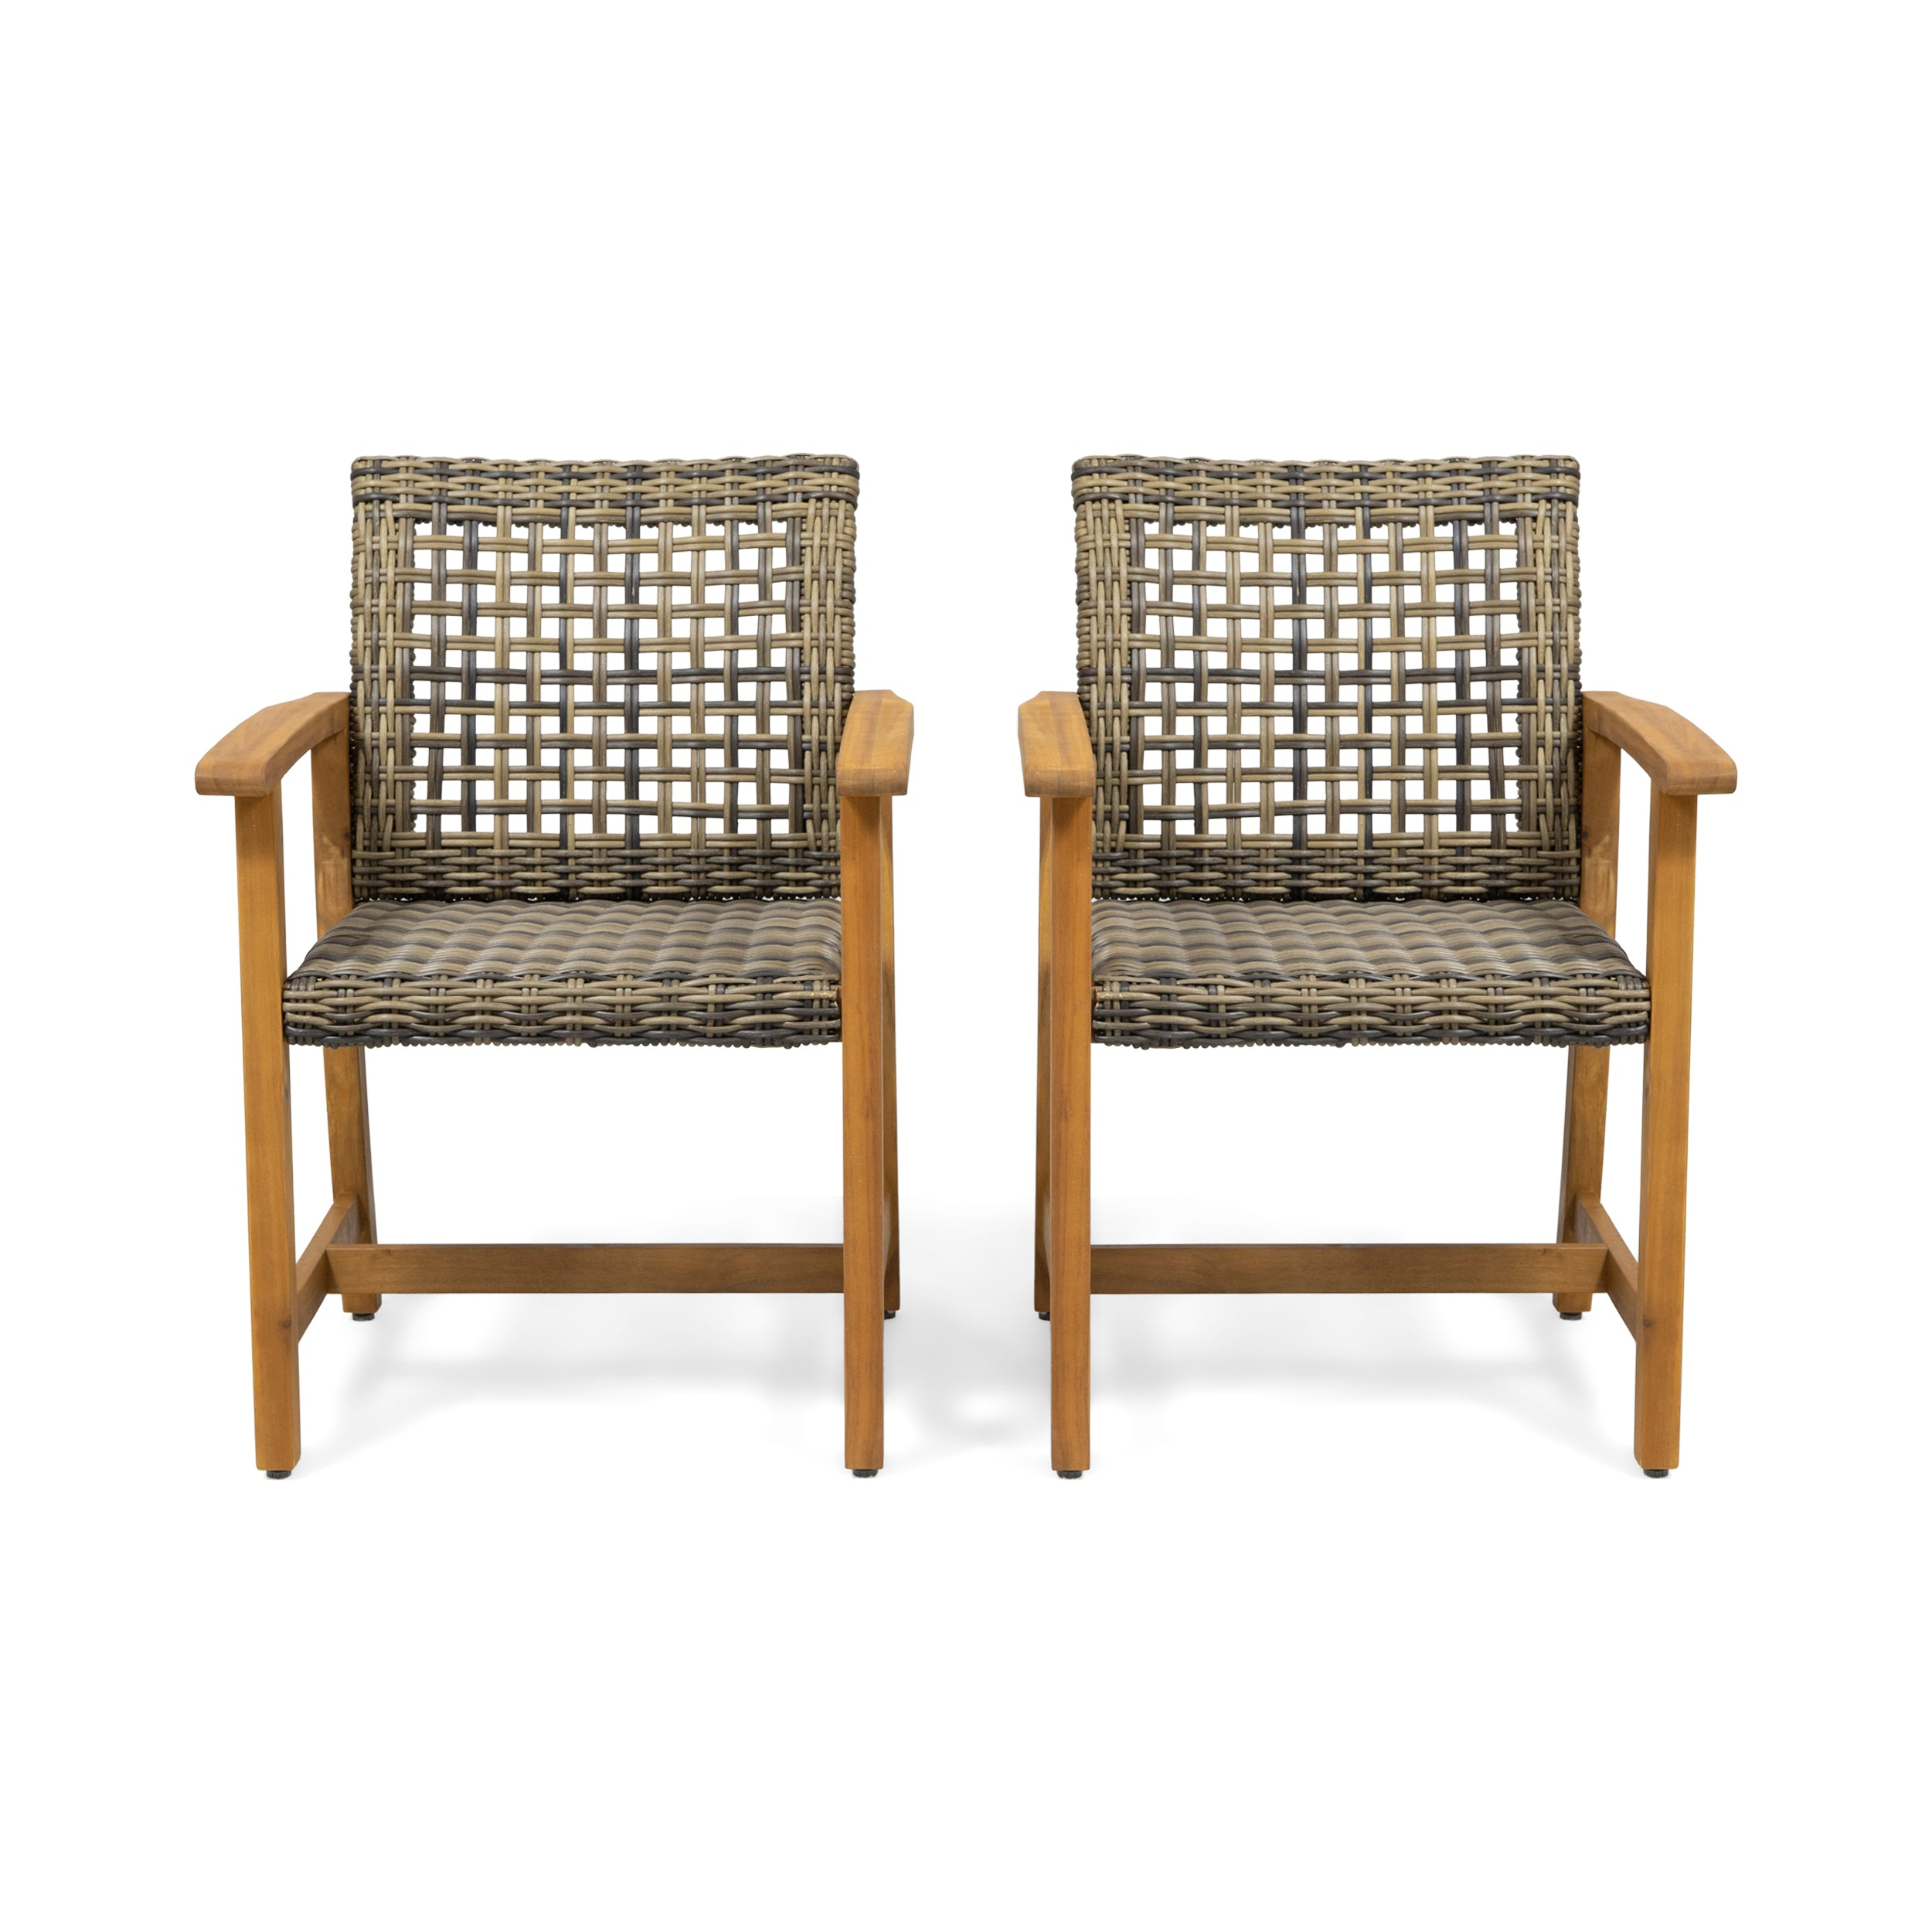 Alyssa Outdoor Acacia Wood and Wicker Dining Chair Set of 2 Natural Gray